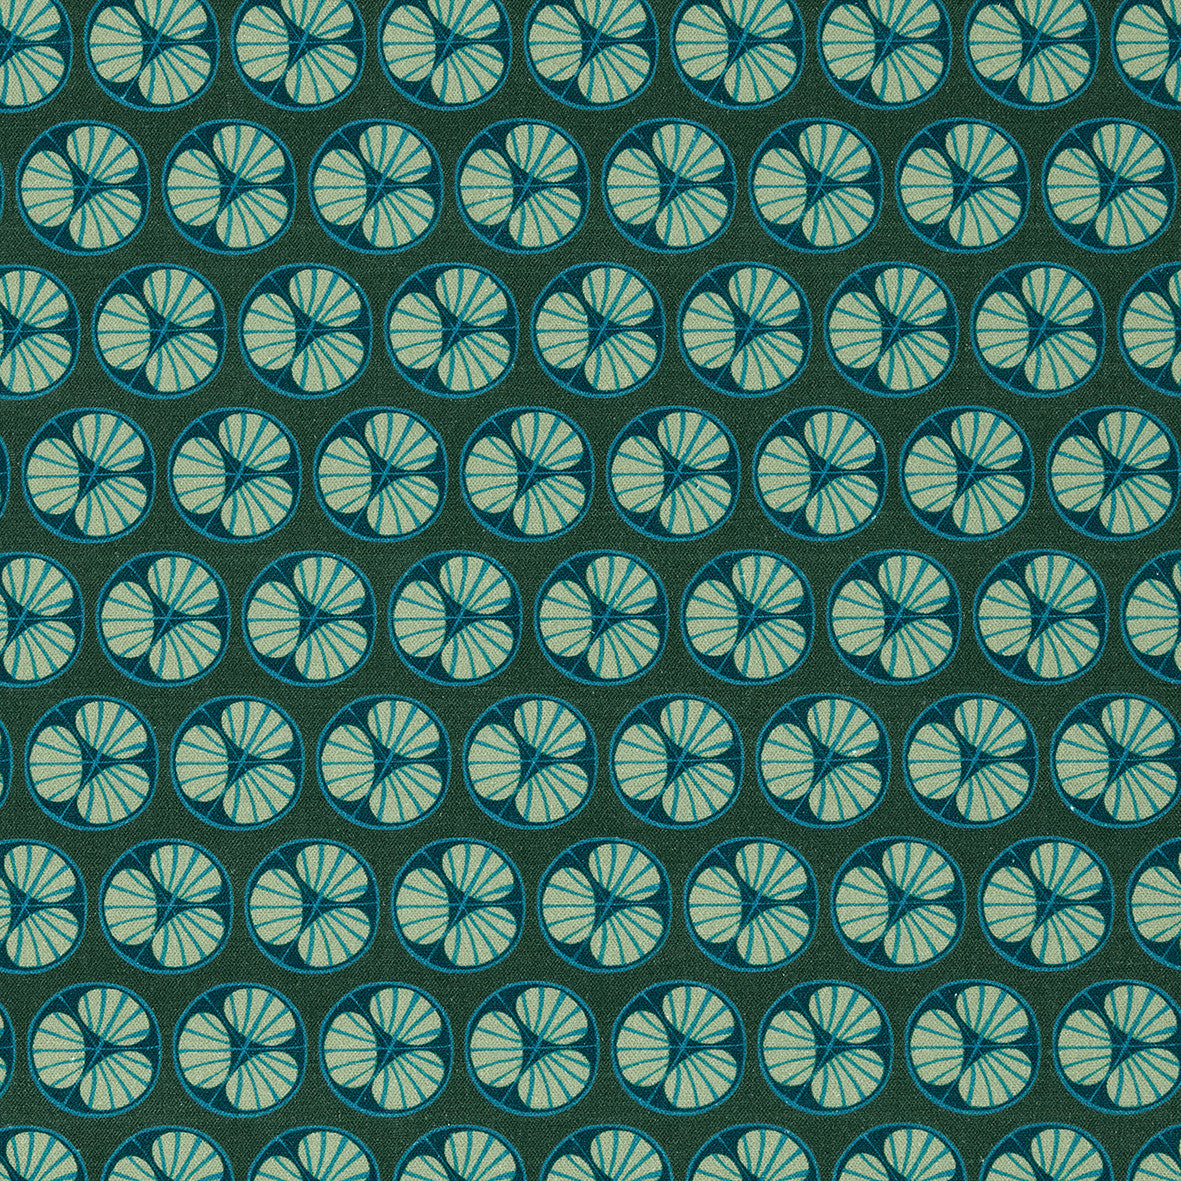 Graphic Cross Section of Fruit Pattern Printed Linen Cotton Canvas Fabric in Dark Moss Green